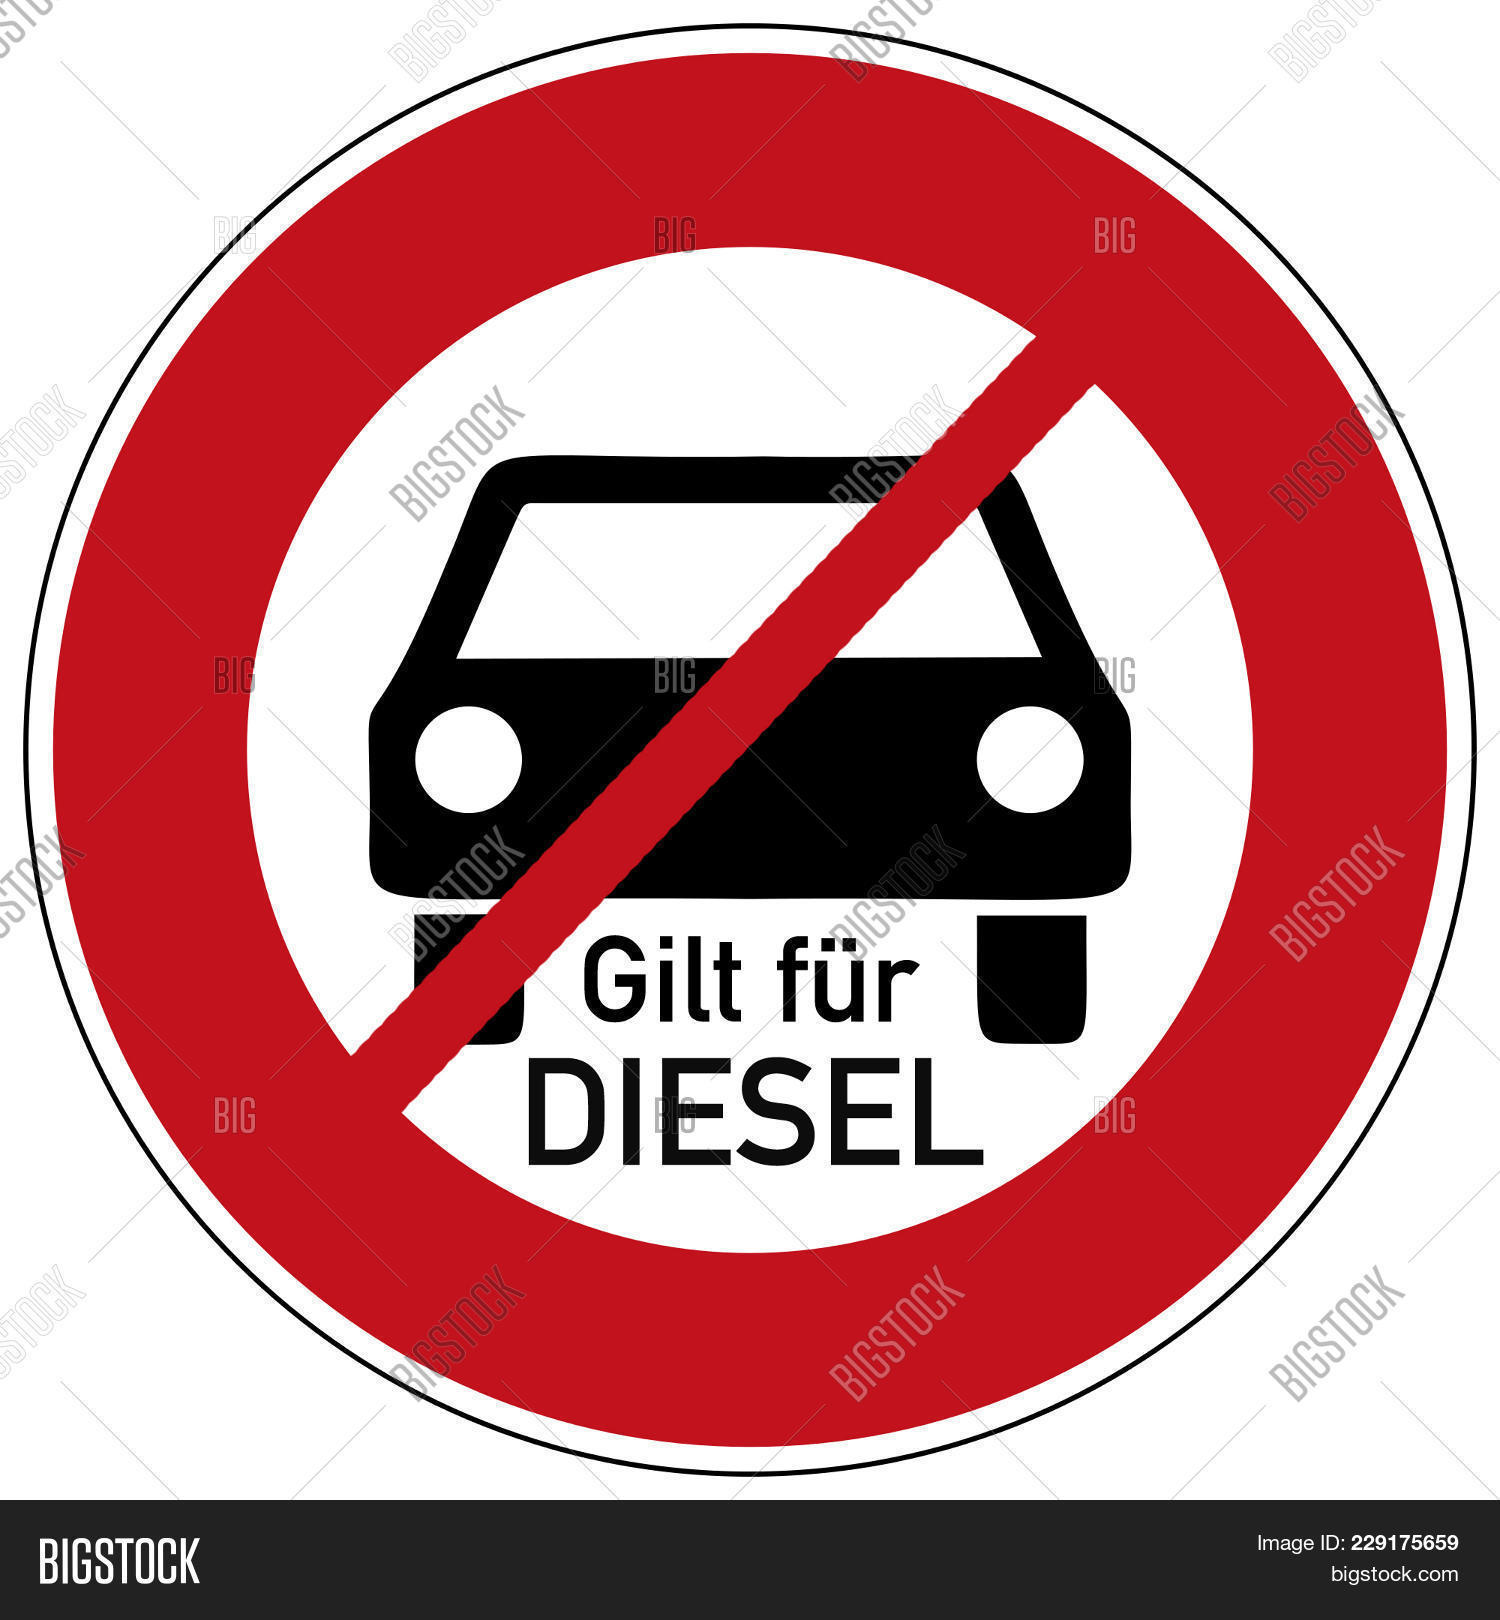 German Traffic Sign Diesel Driving Image Photo Bigstock